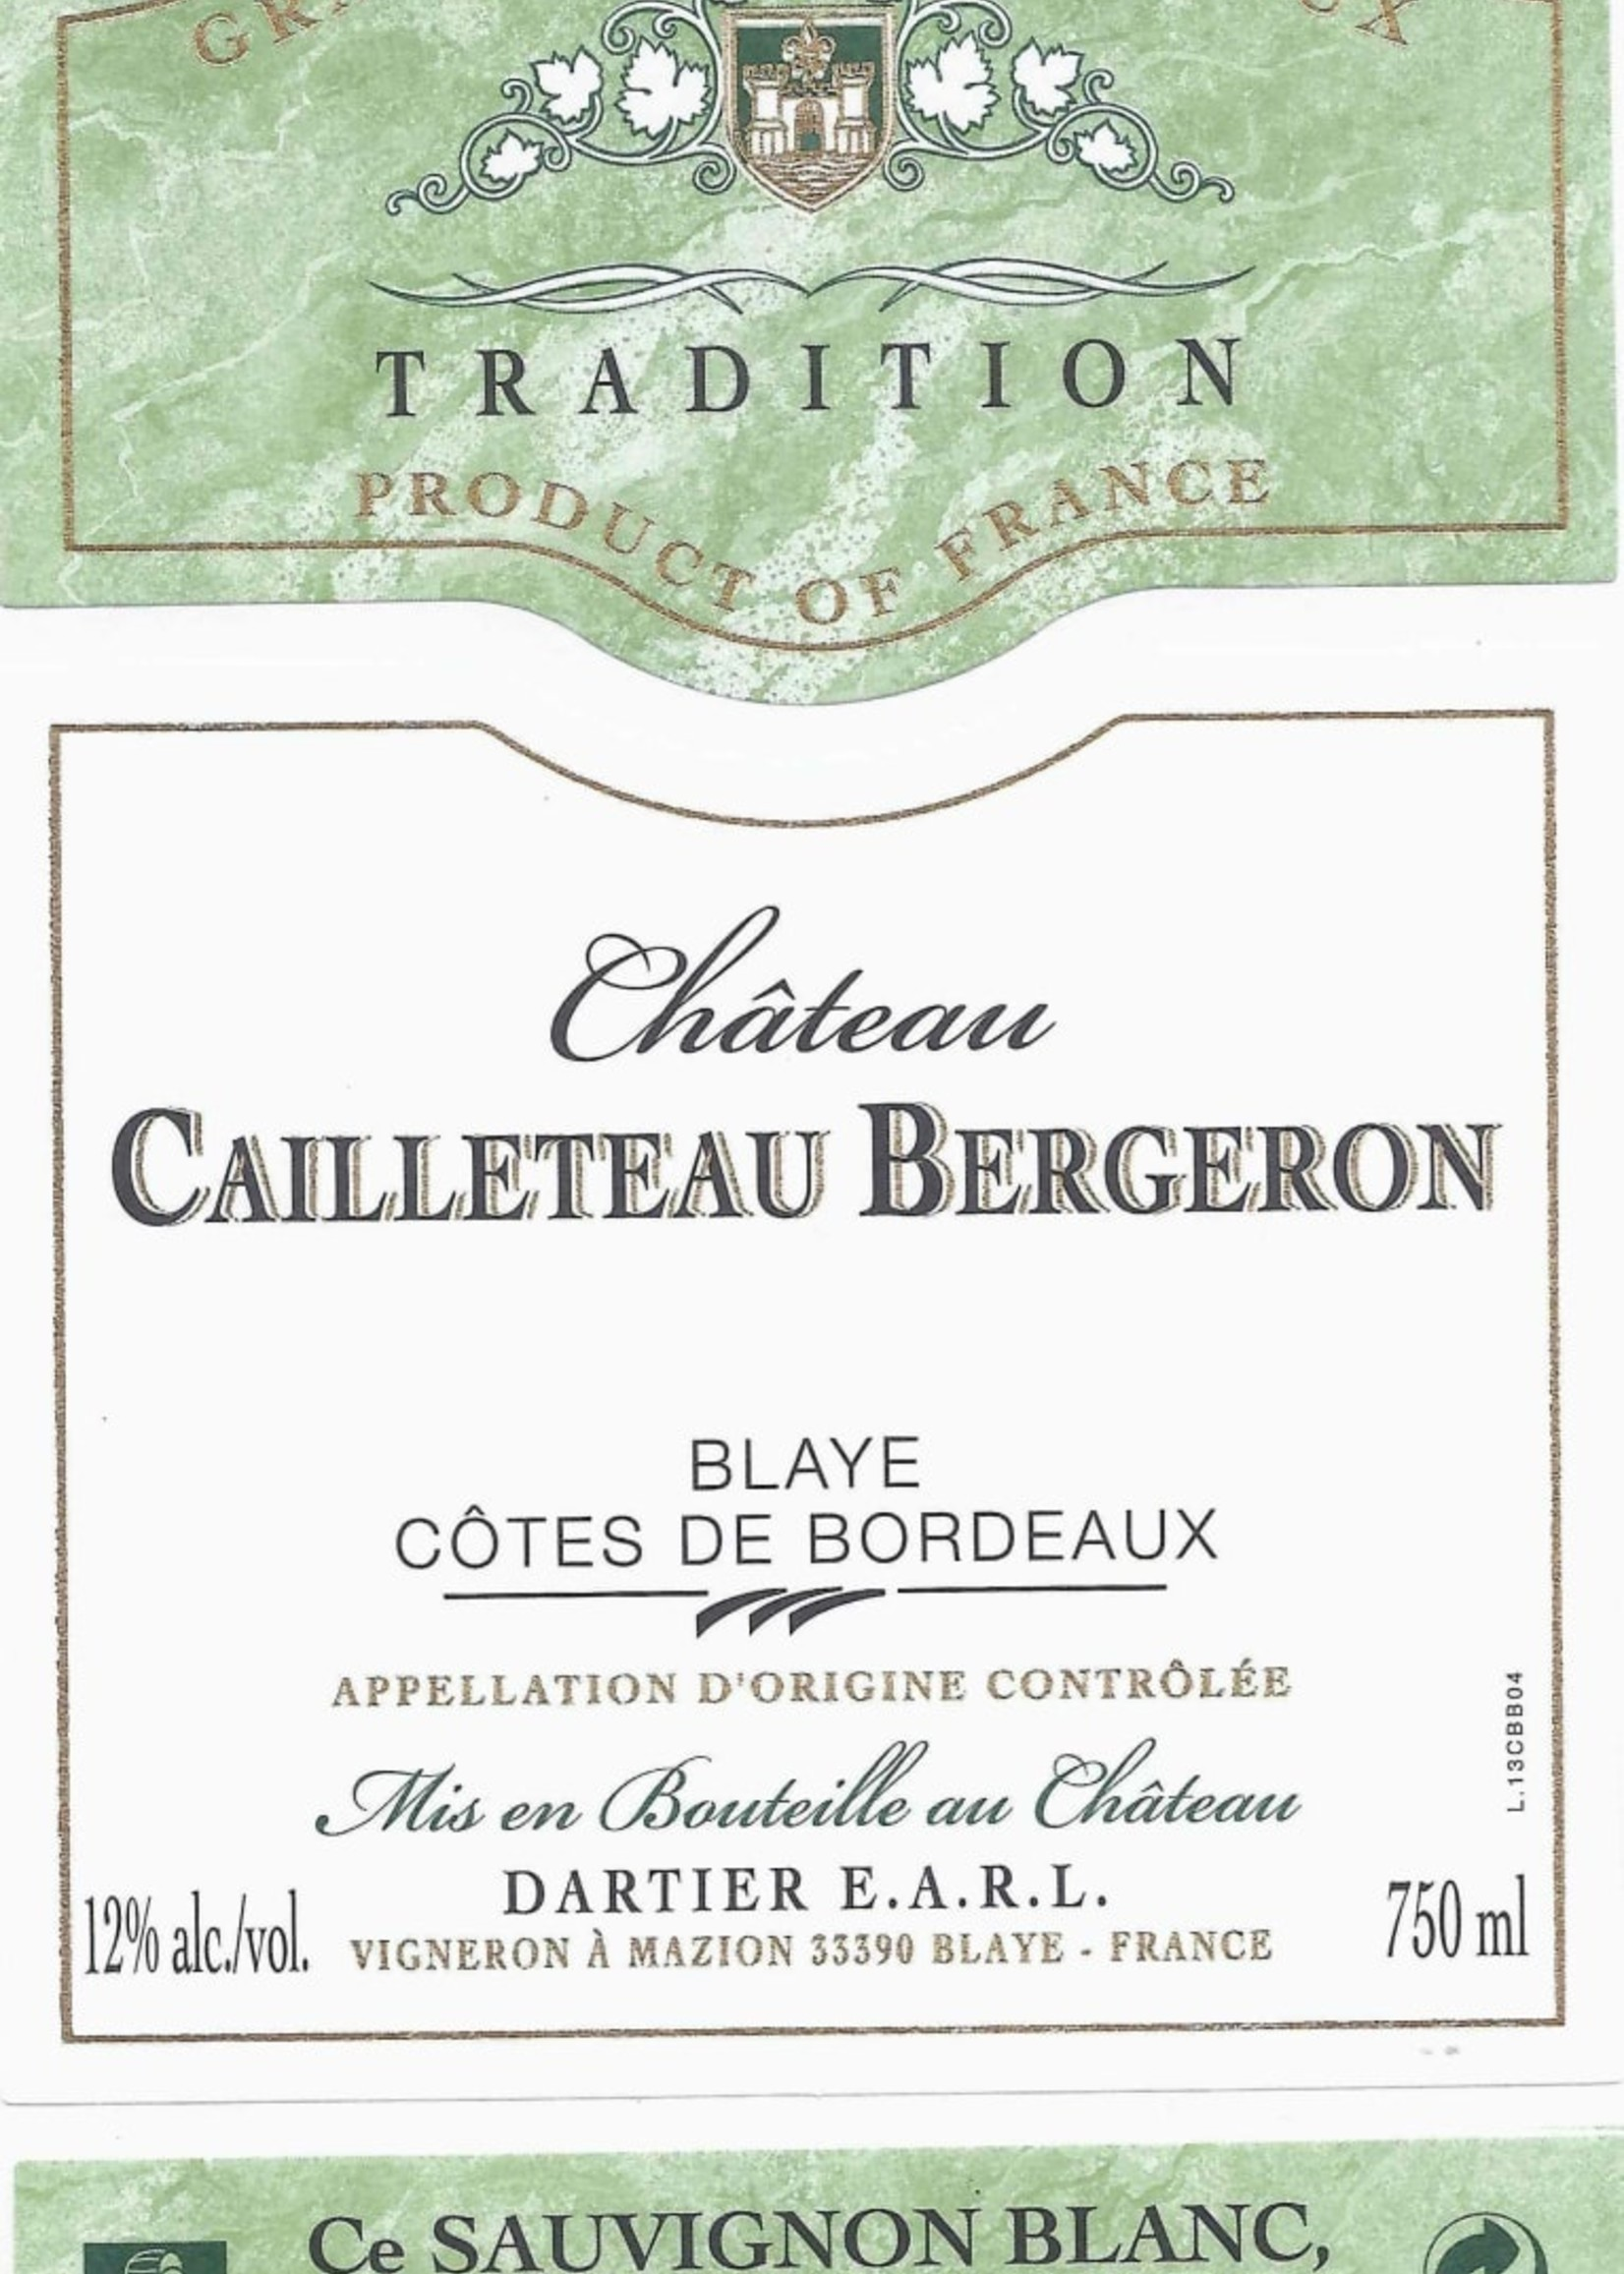 Chateau Cailleteau Bergeron White Bordeaux